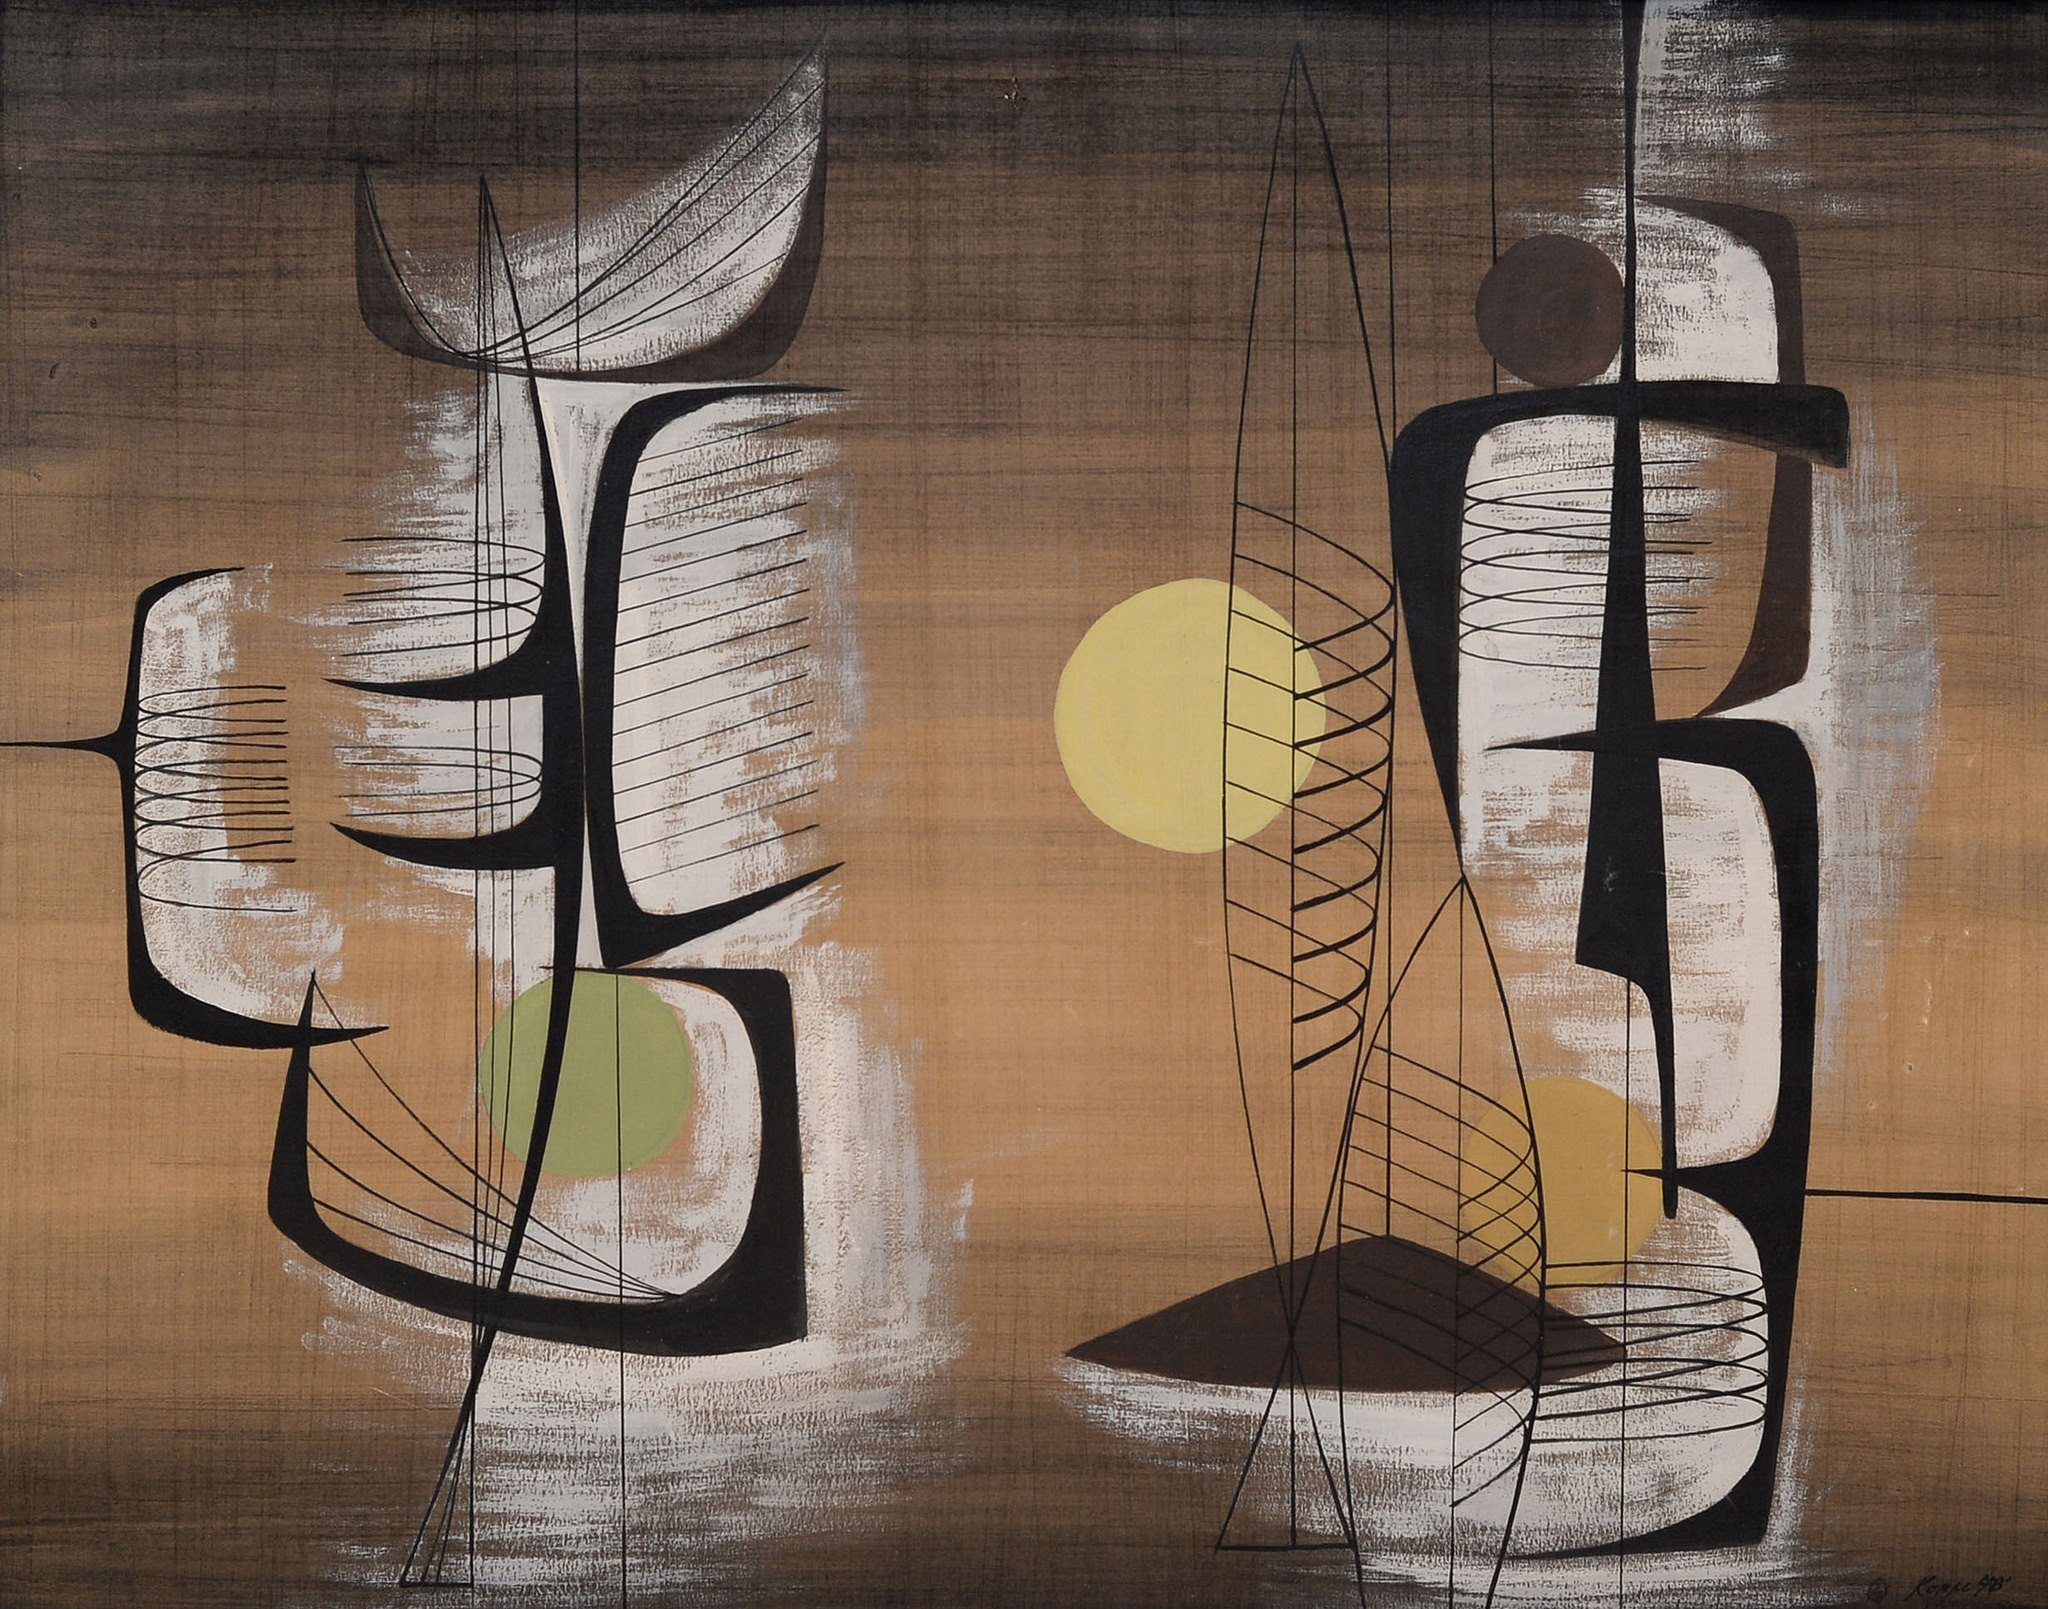 SOFA selects: Richard Koppe, 'Moonlight Night,' 1948. (Courtesy of SOFA Chicago)